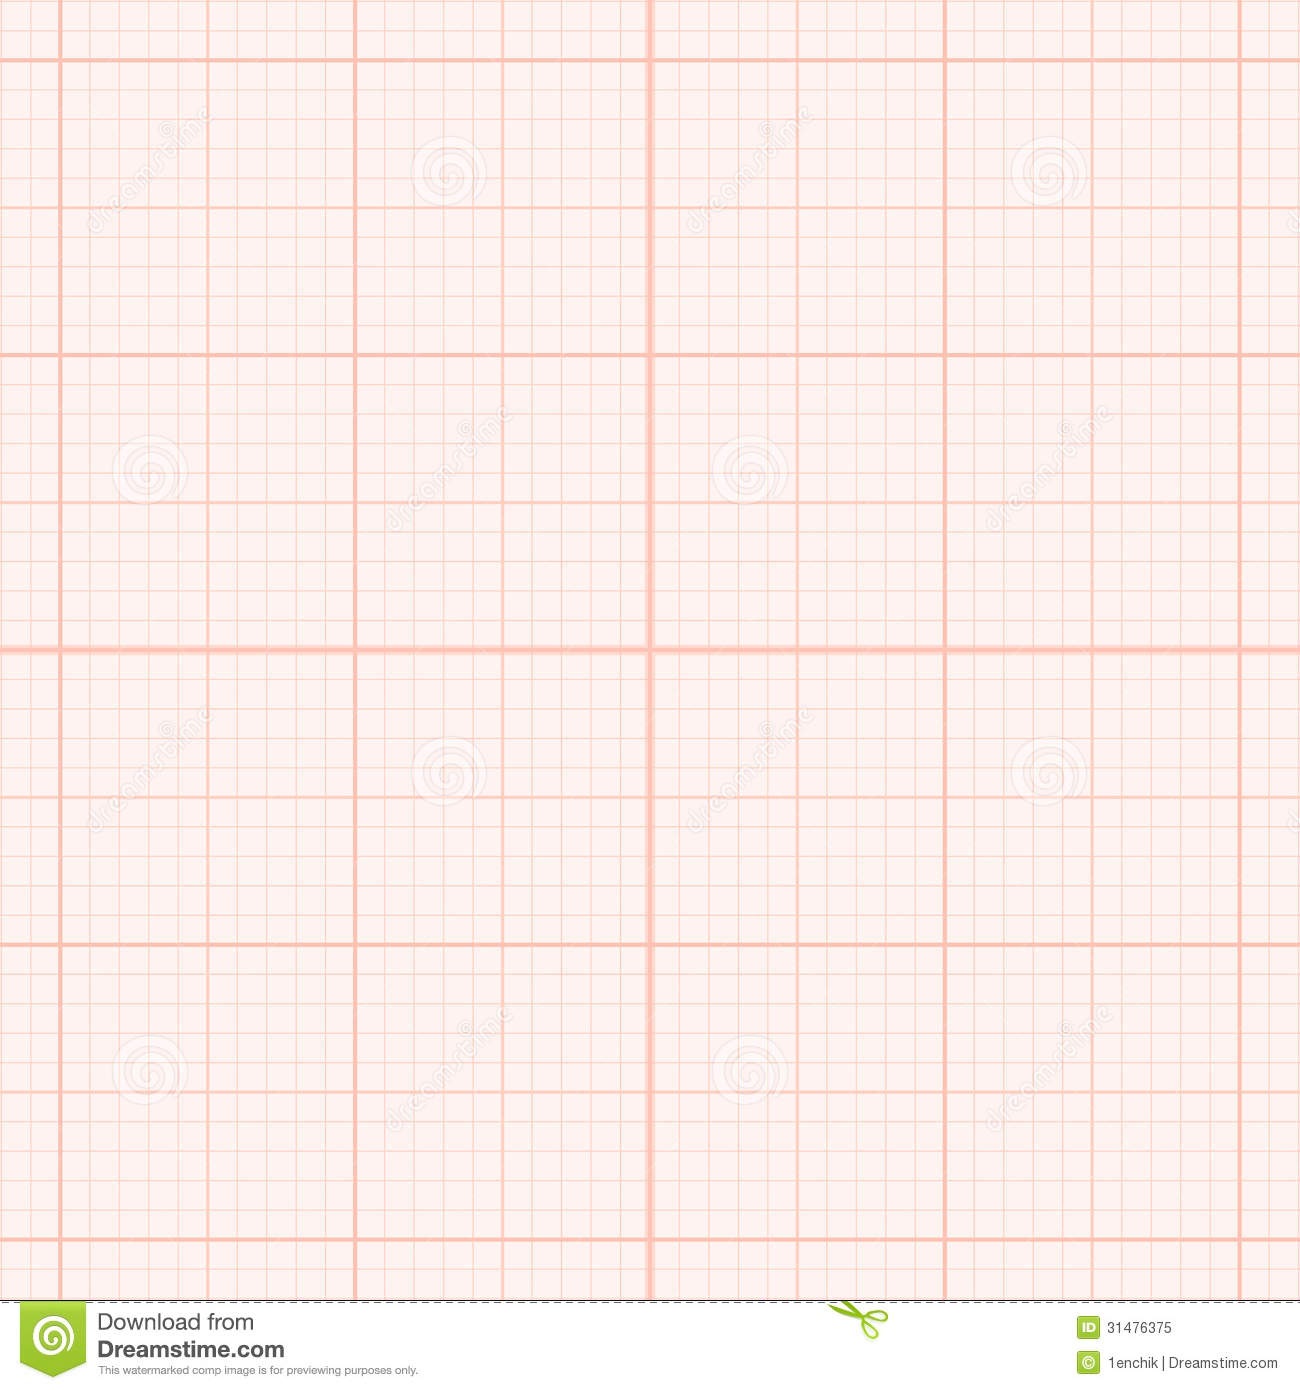 print engineering graph paper